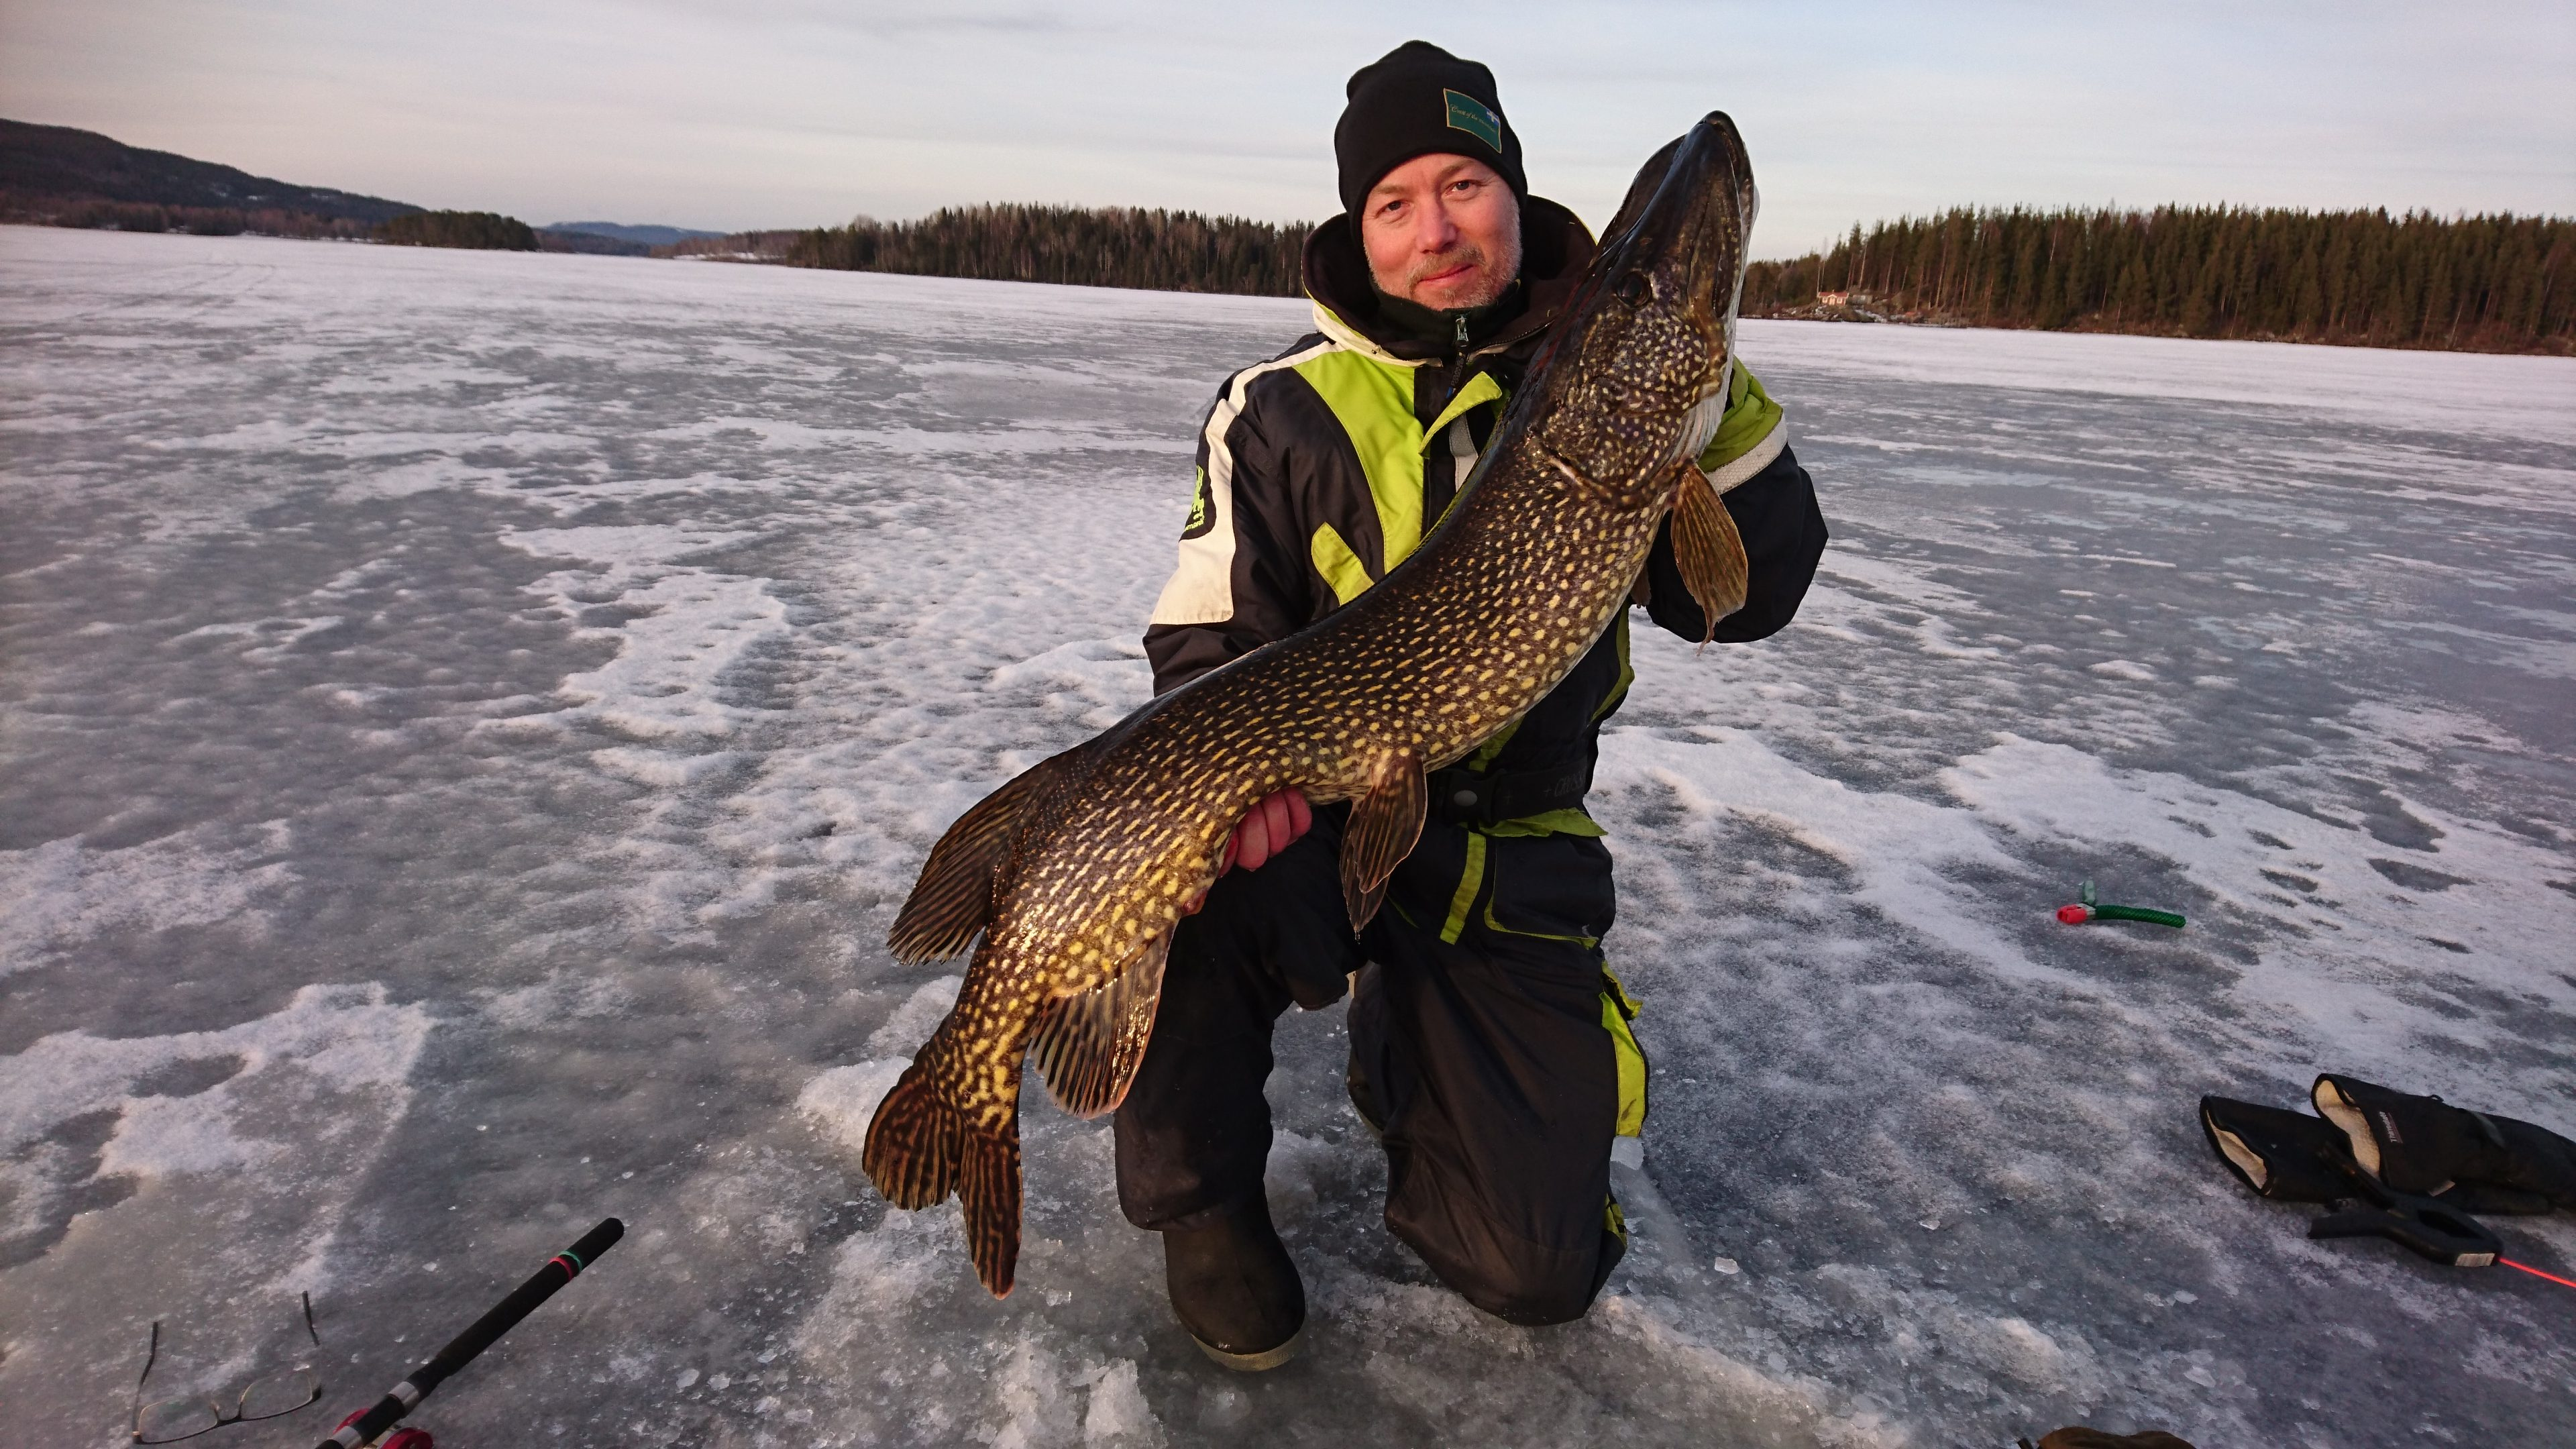 Björn with 122cm big pike from storsjön